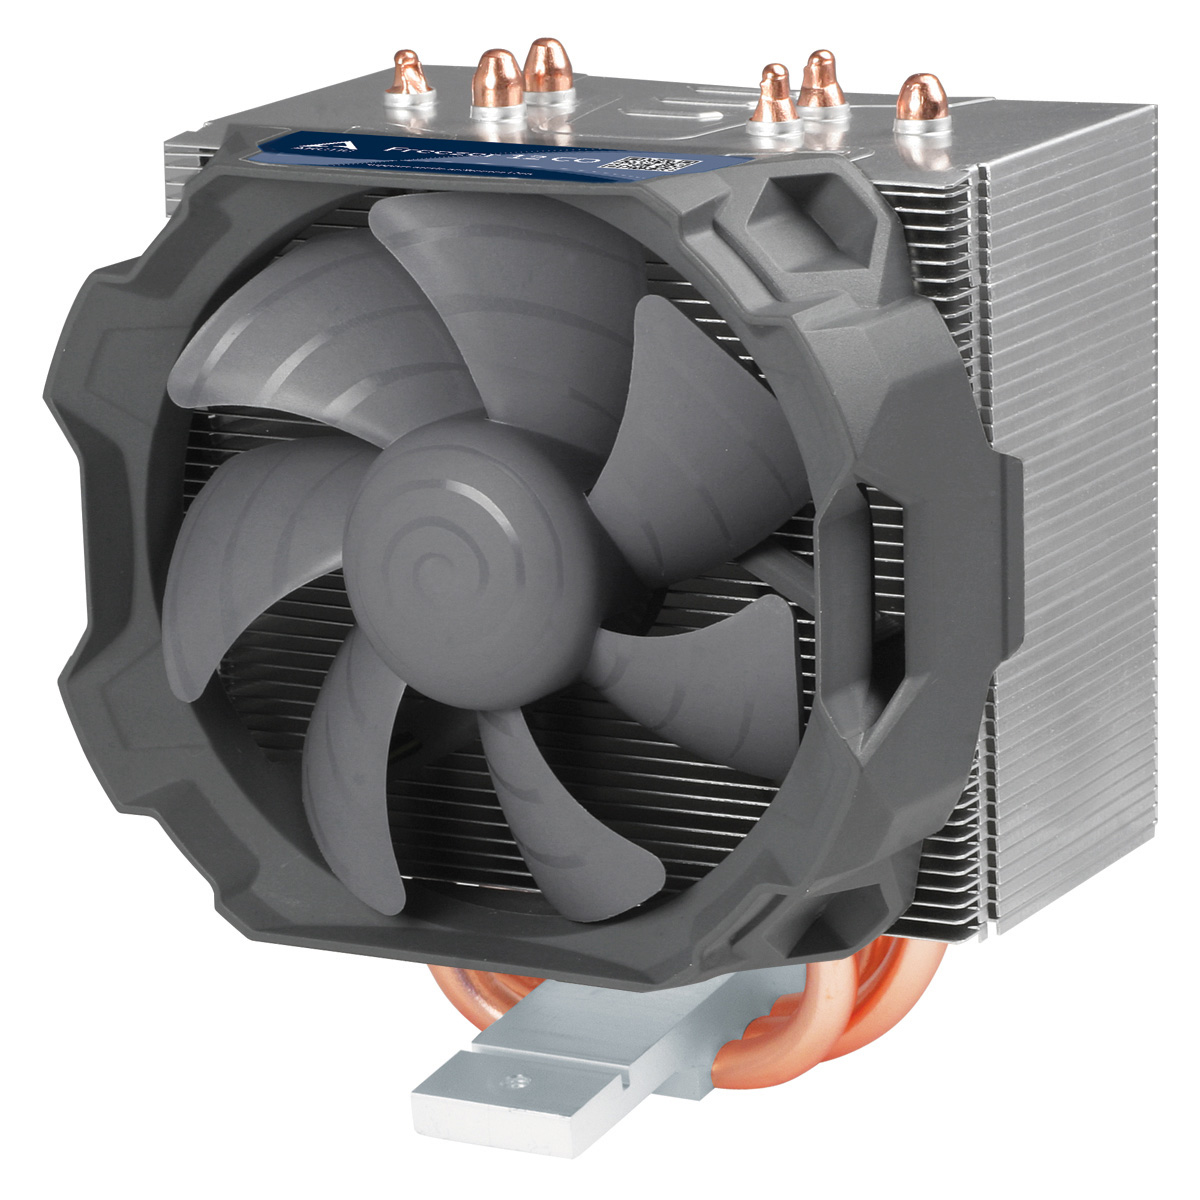 ARCTIC Freezer 12 CO, CPU Cooler for Intel socket 2011(-v3)/1150/1151/1155/1156/2066 & AMD socket AM4, with TDP 150W